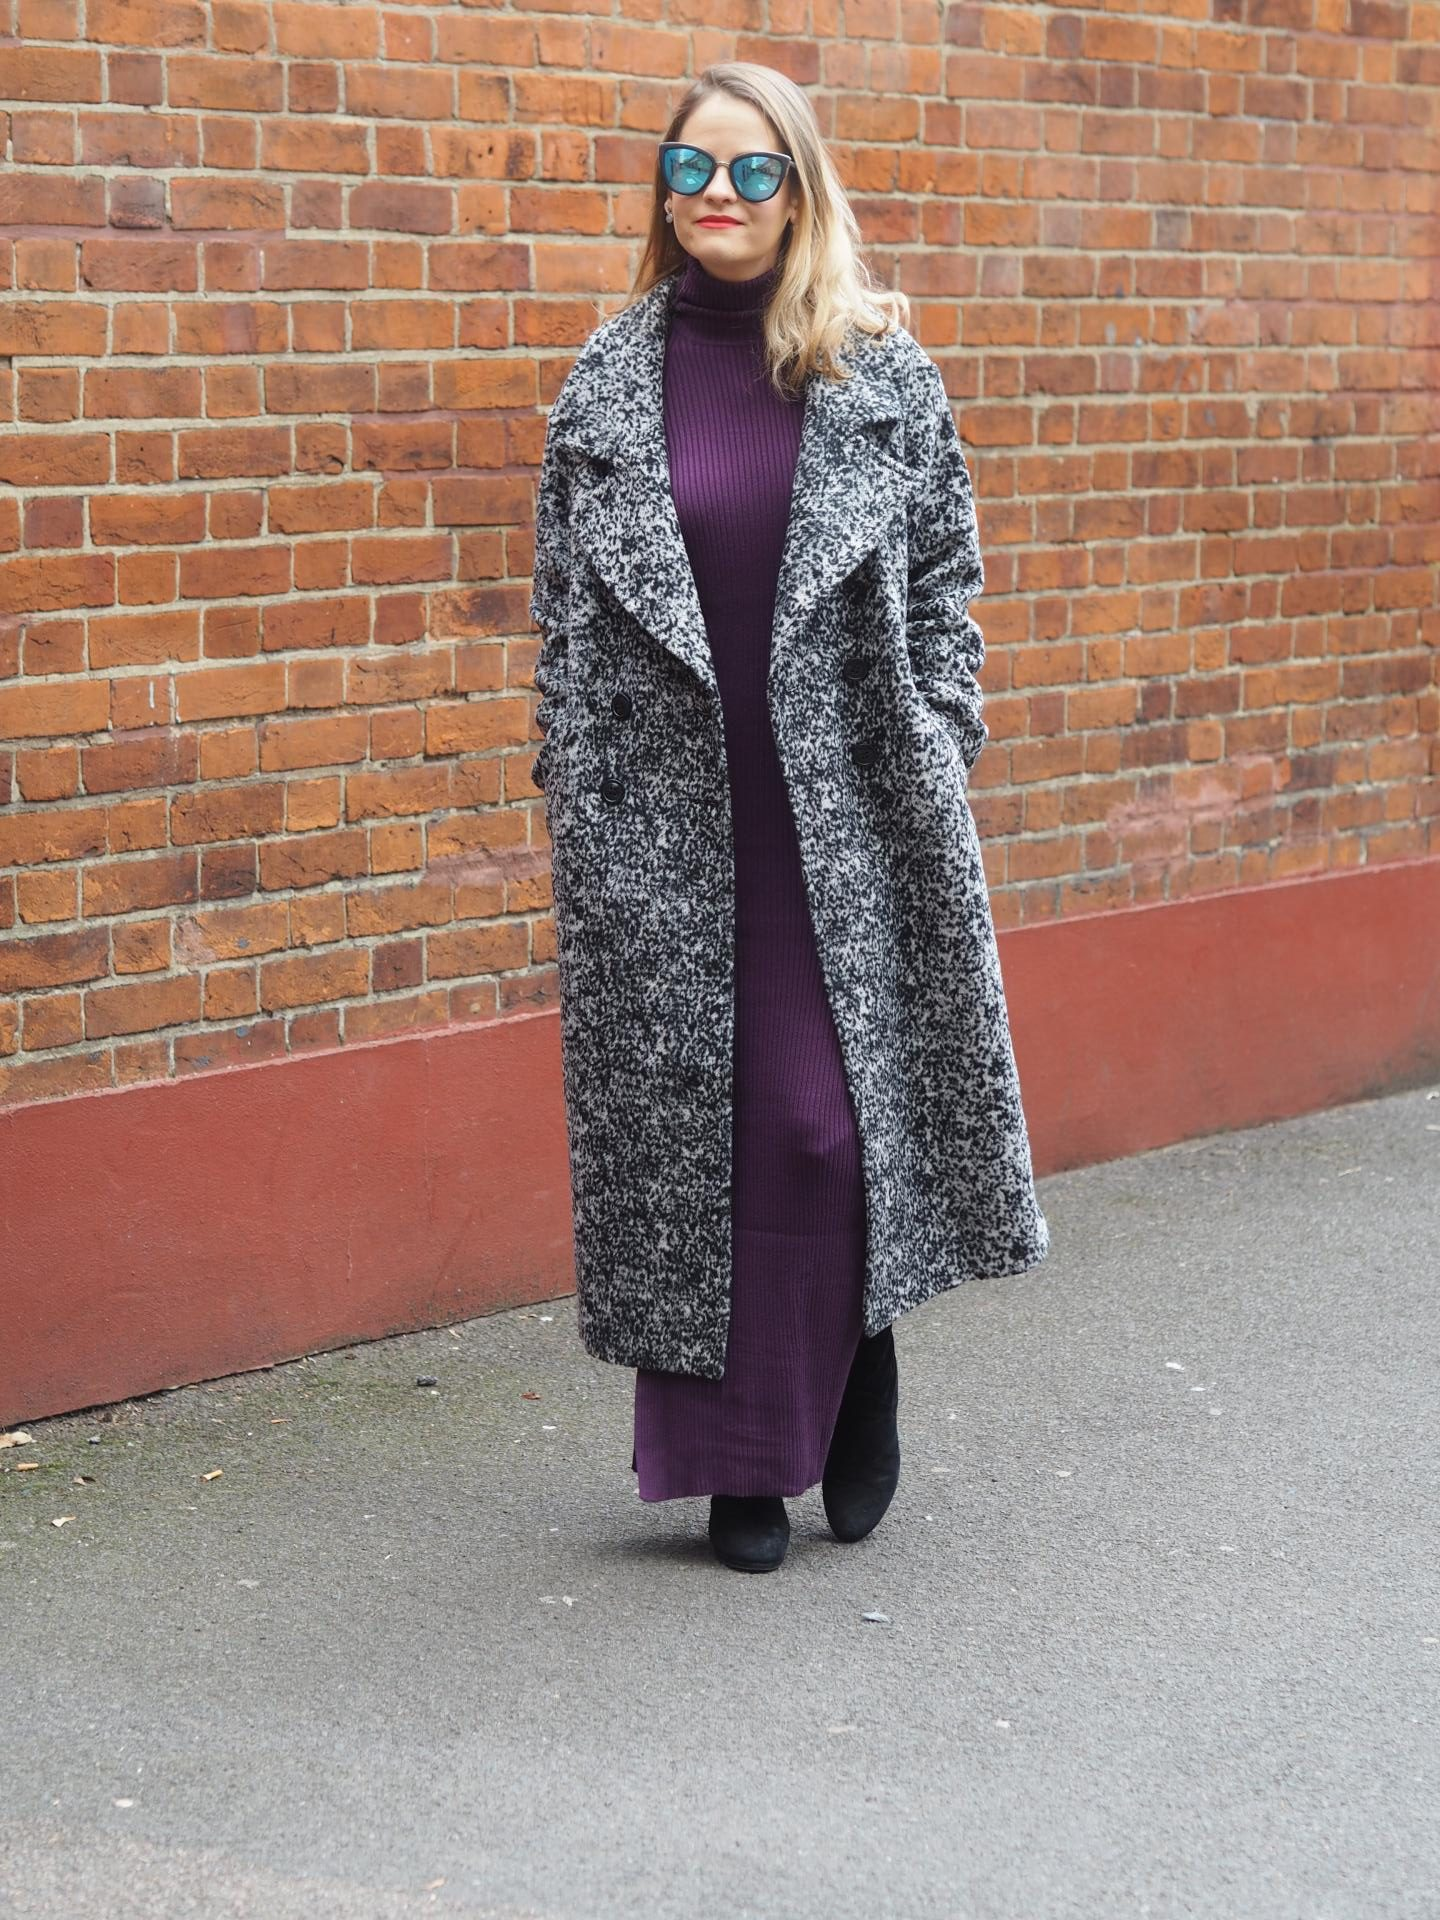 Long speckled coat with long dress